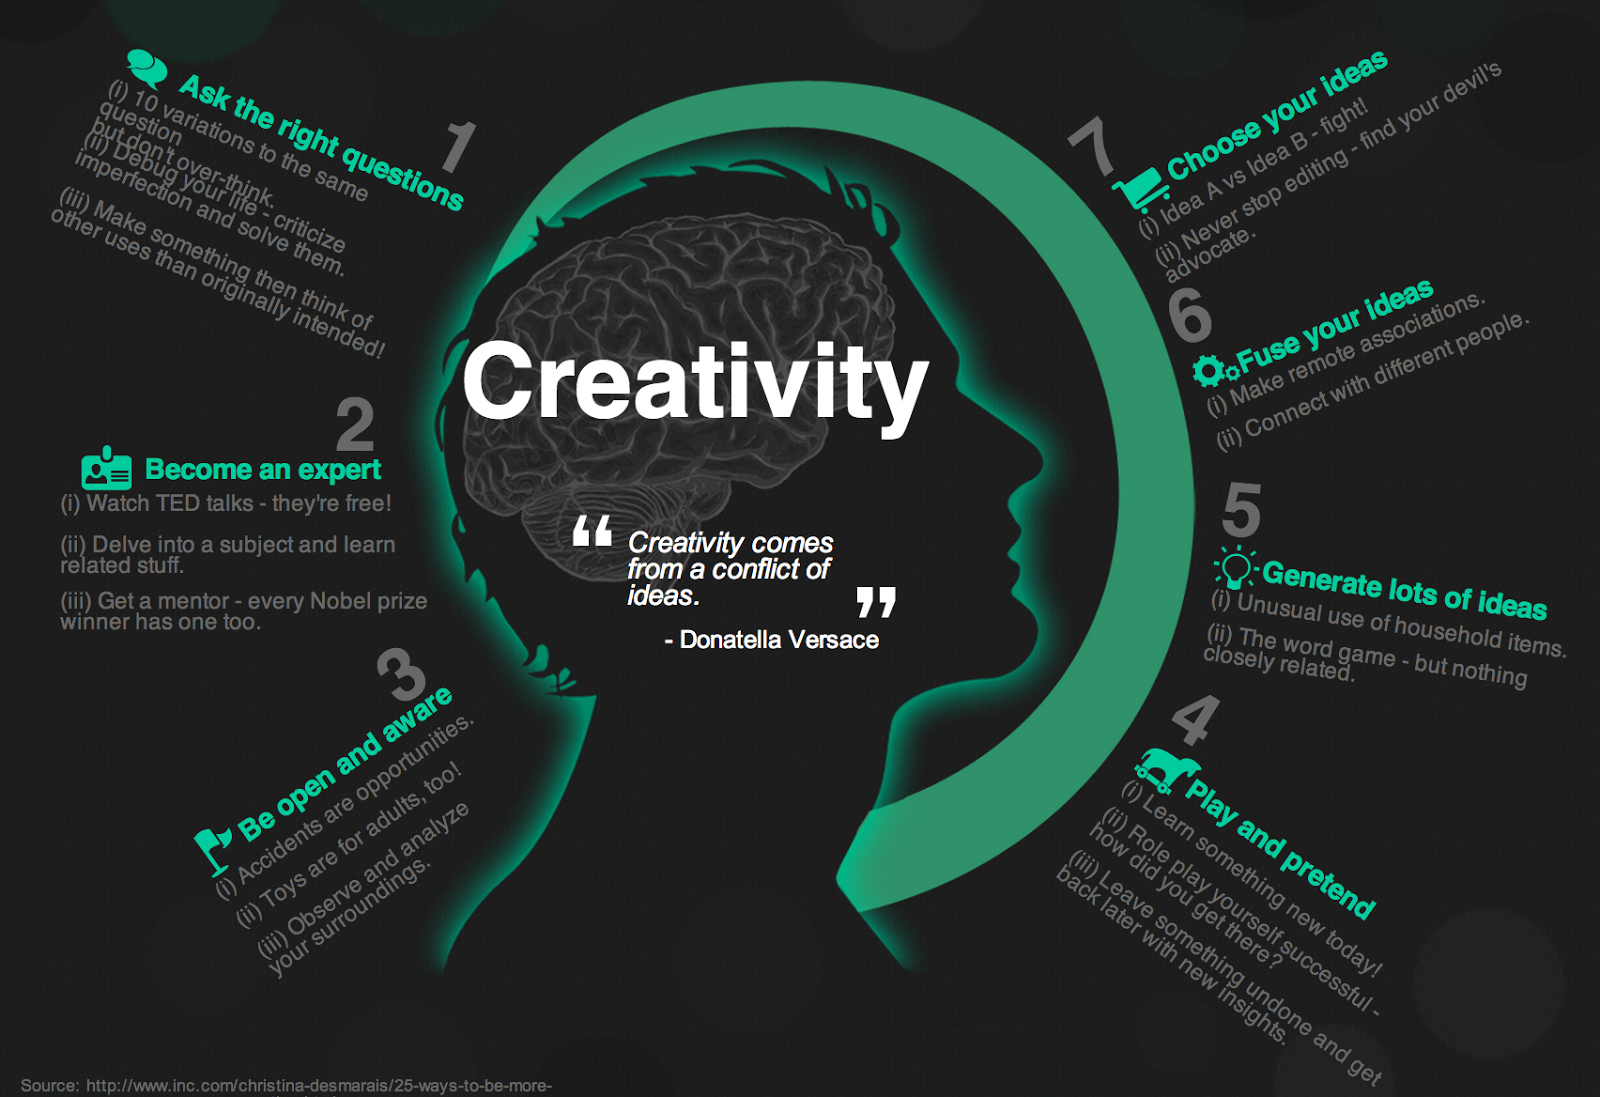 A Good Visual Featuring 7 Ways To Be More Creative